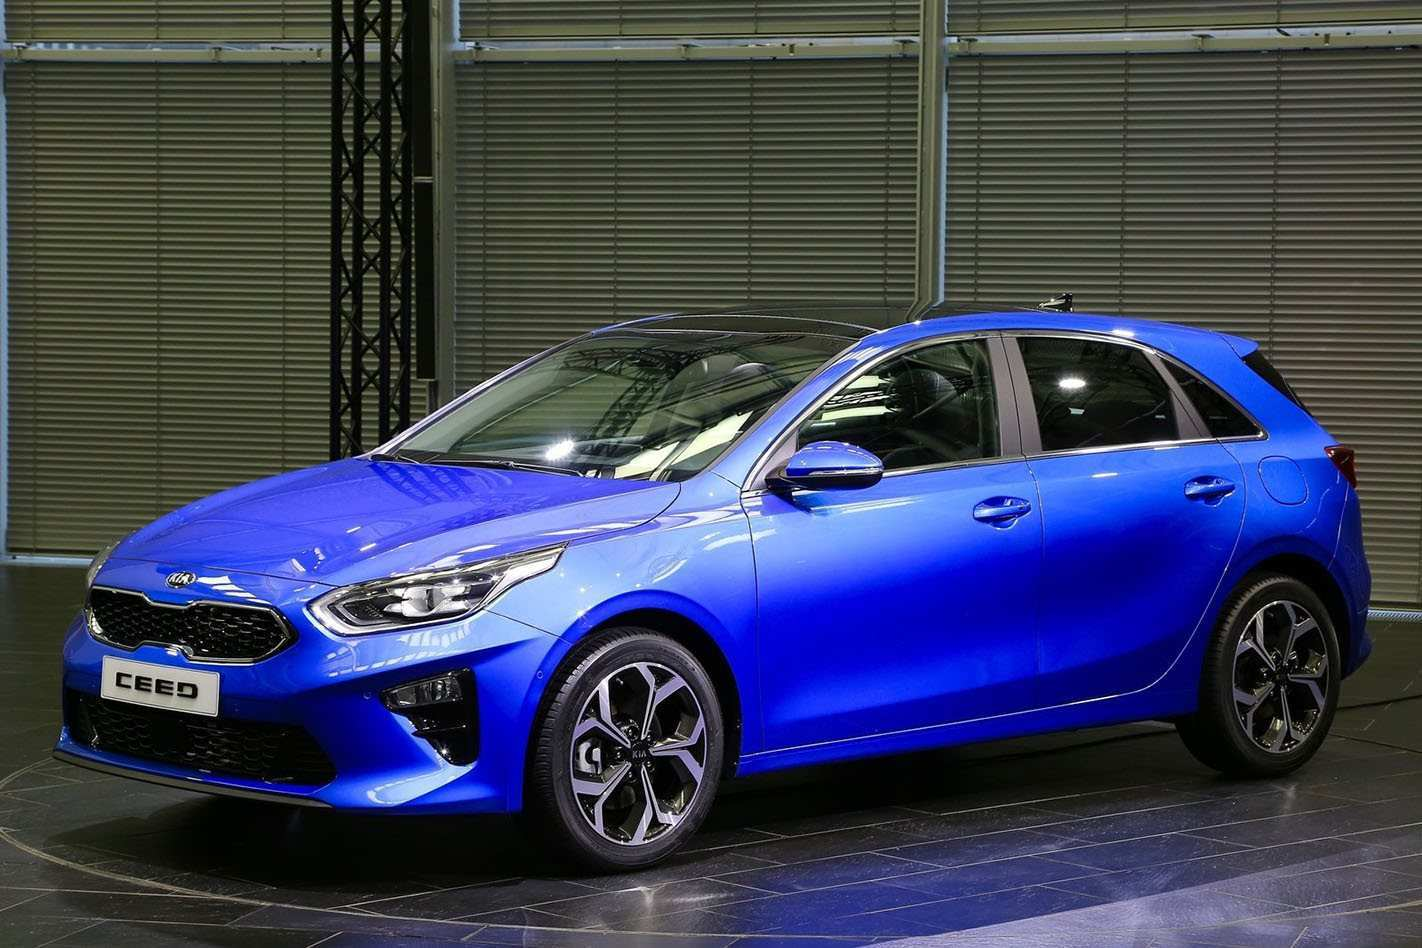 33 Gallery of Kia Cerato 2020 Hatch Research New by Kia Cerato 2020 Hatch